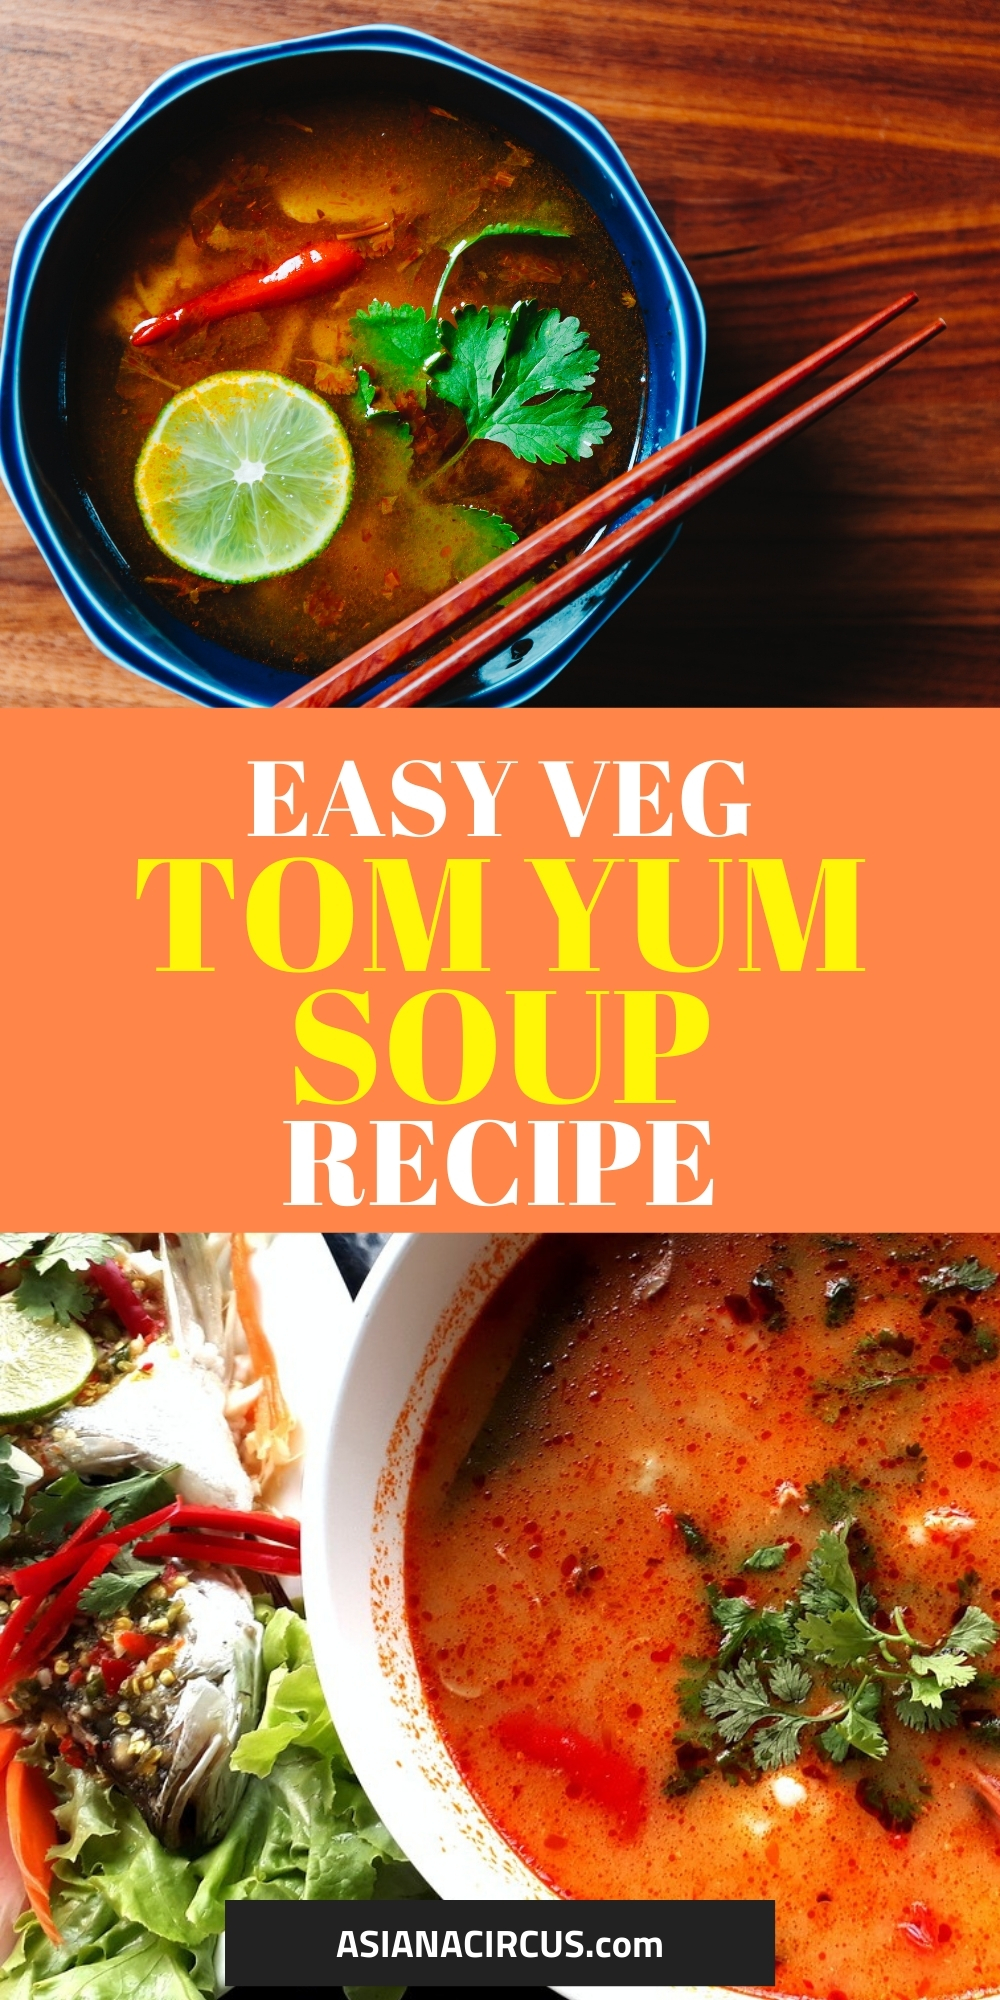 Vegetarian tom yum soup recipe with coconut